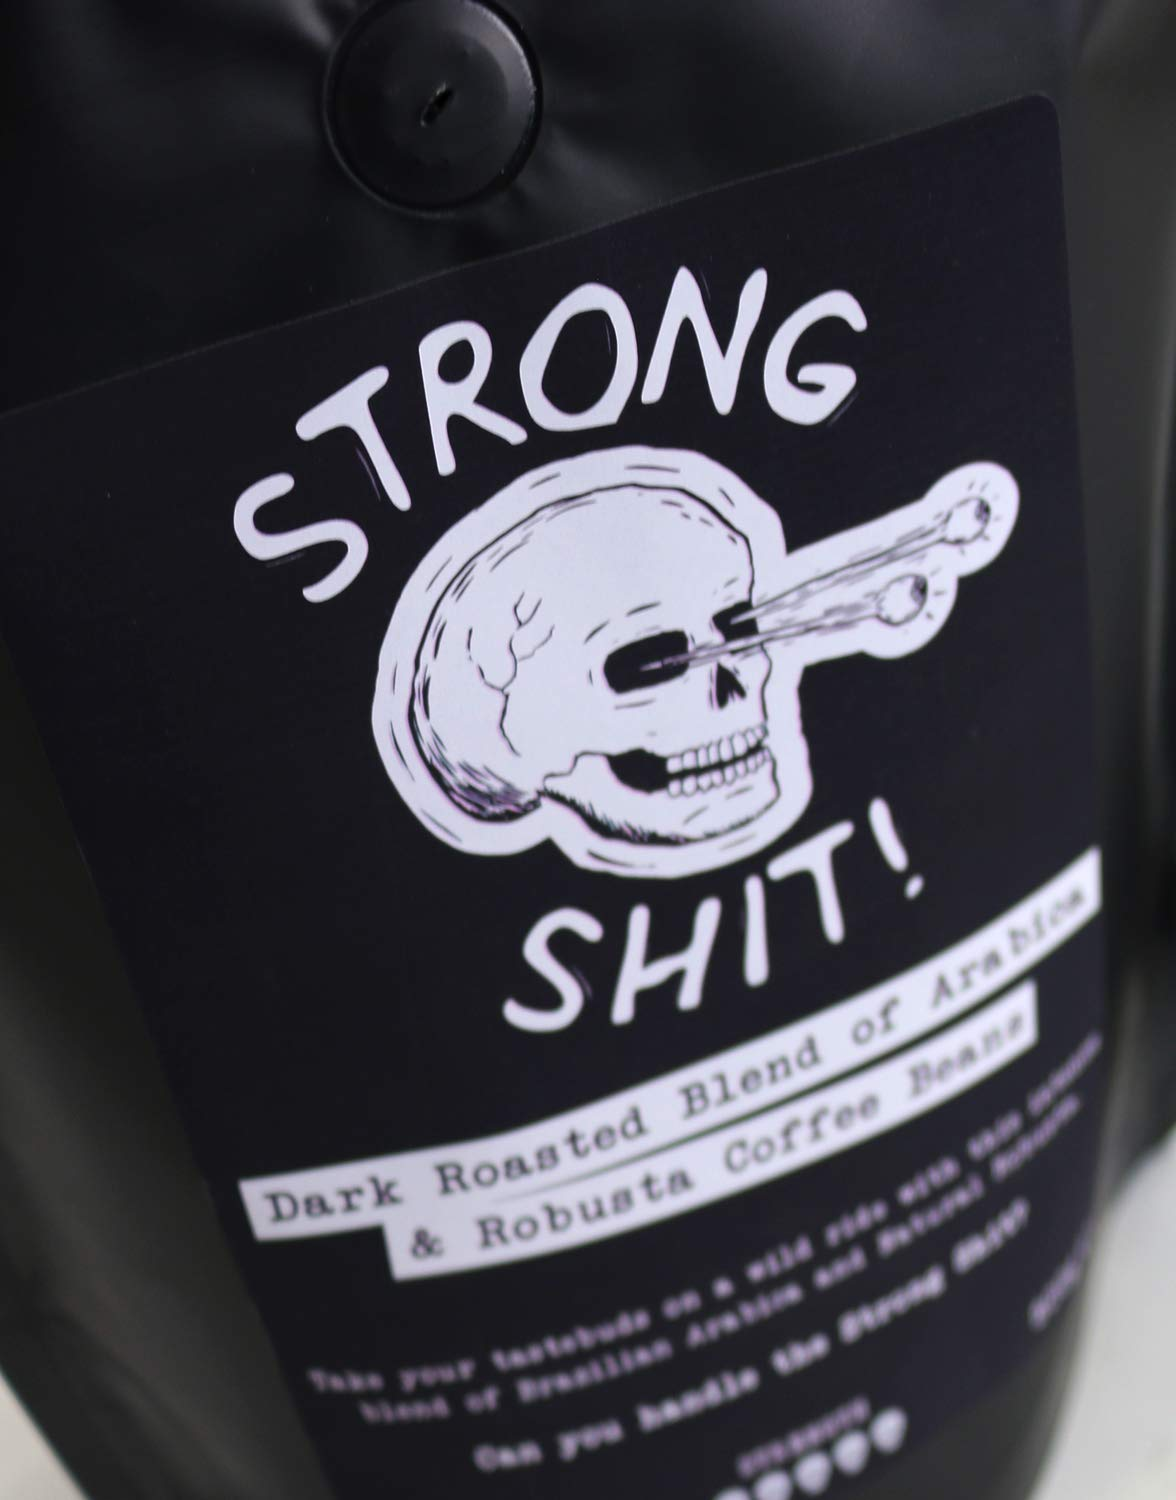 Strong Shit! – Dark Roasted Blend of Arabica and Robusta Coffee Beans – 500g